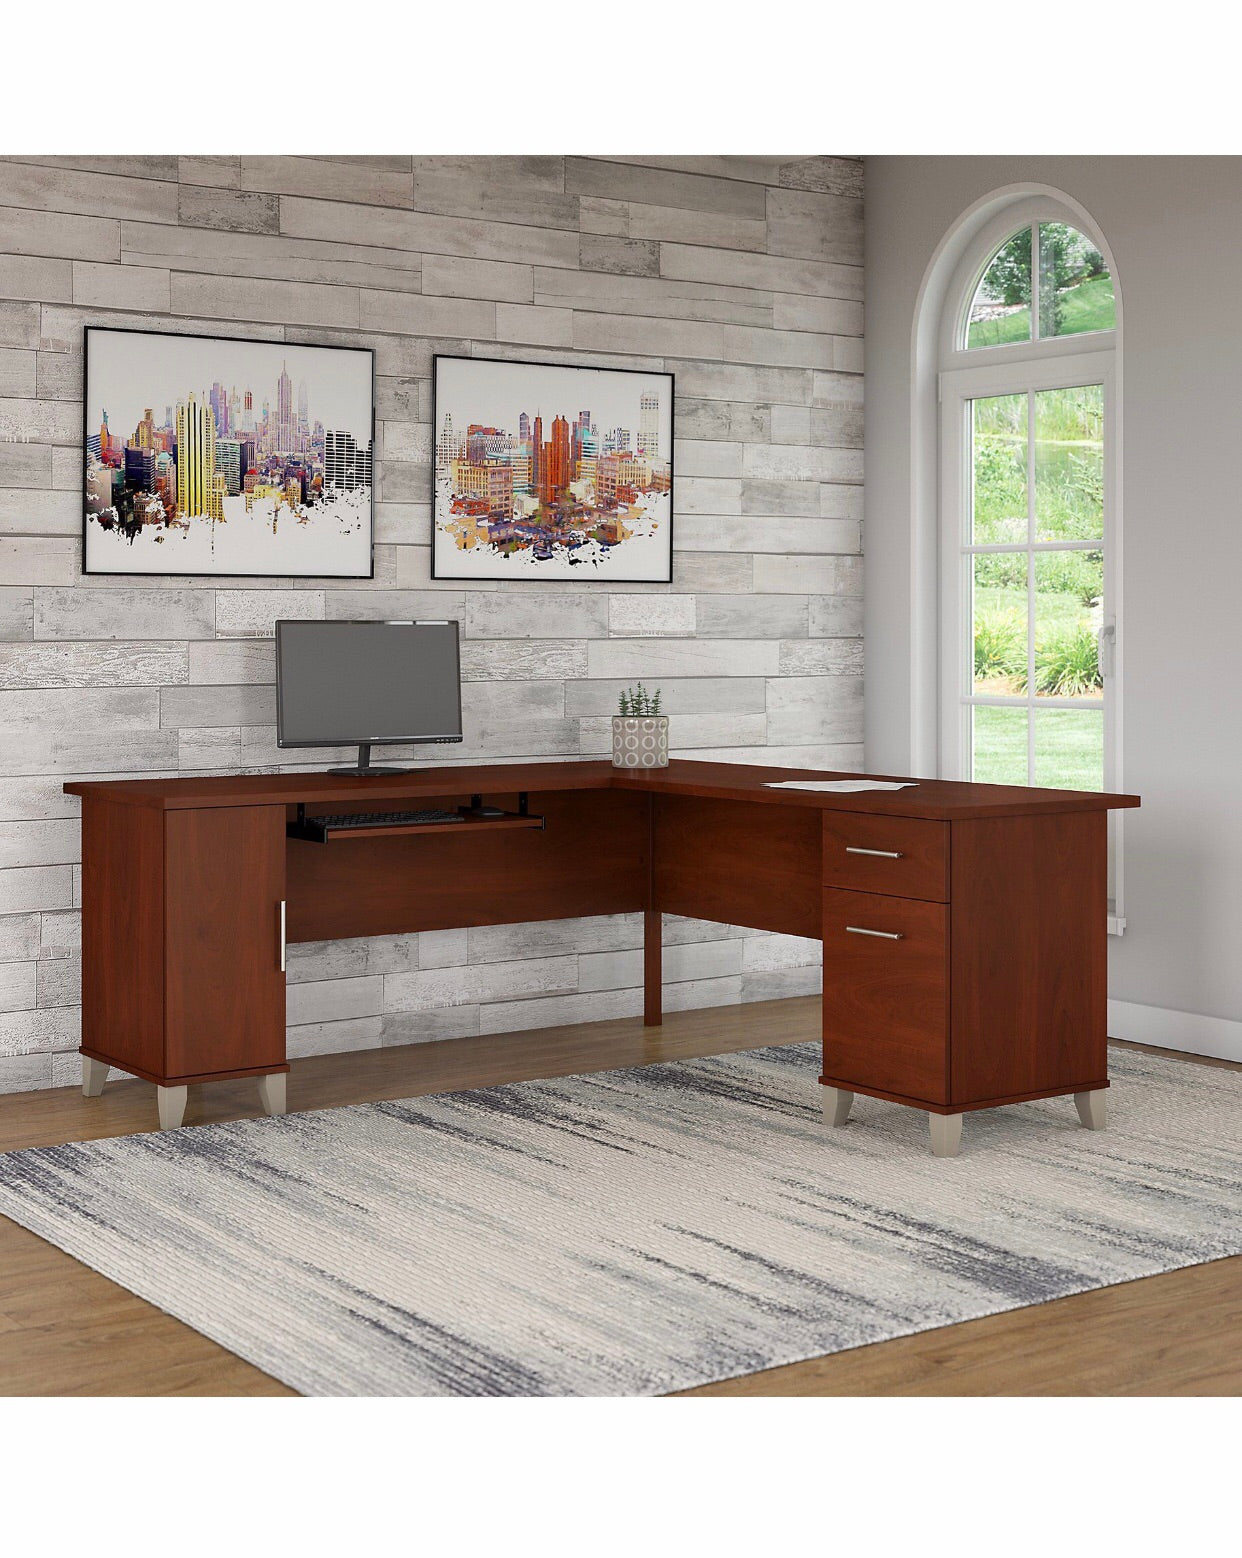 L- shape executive desk